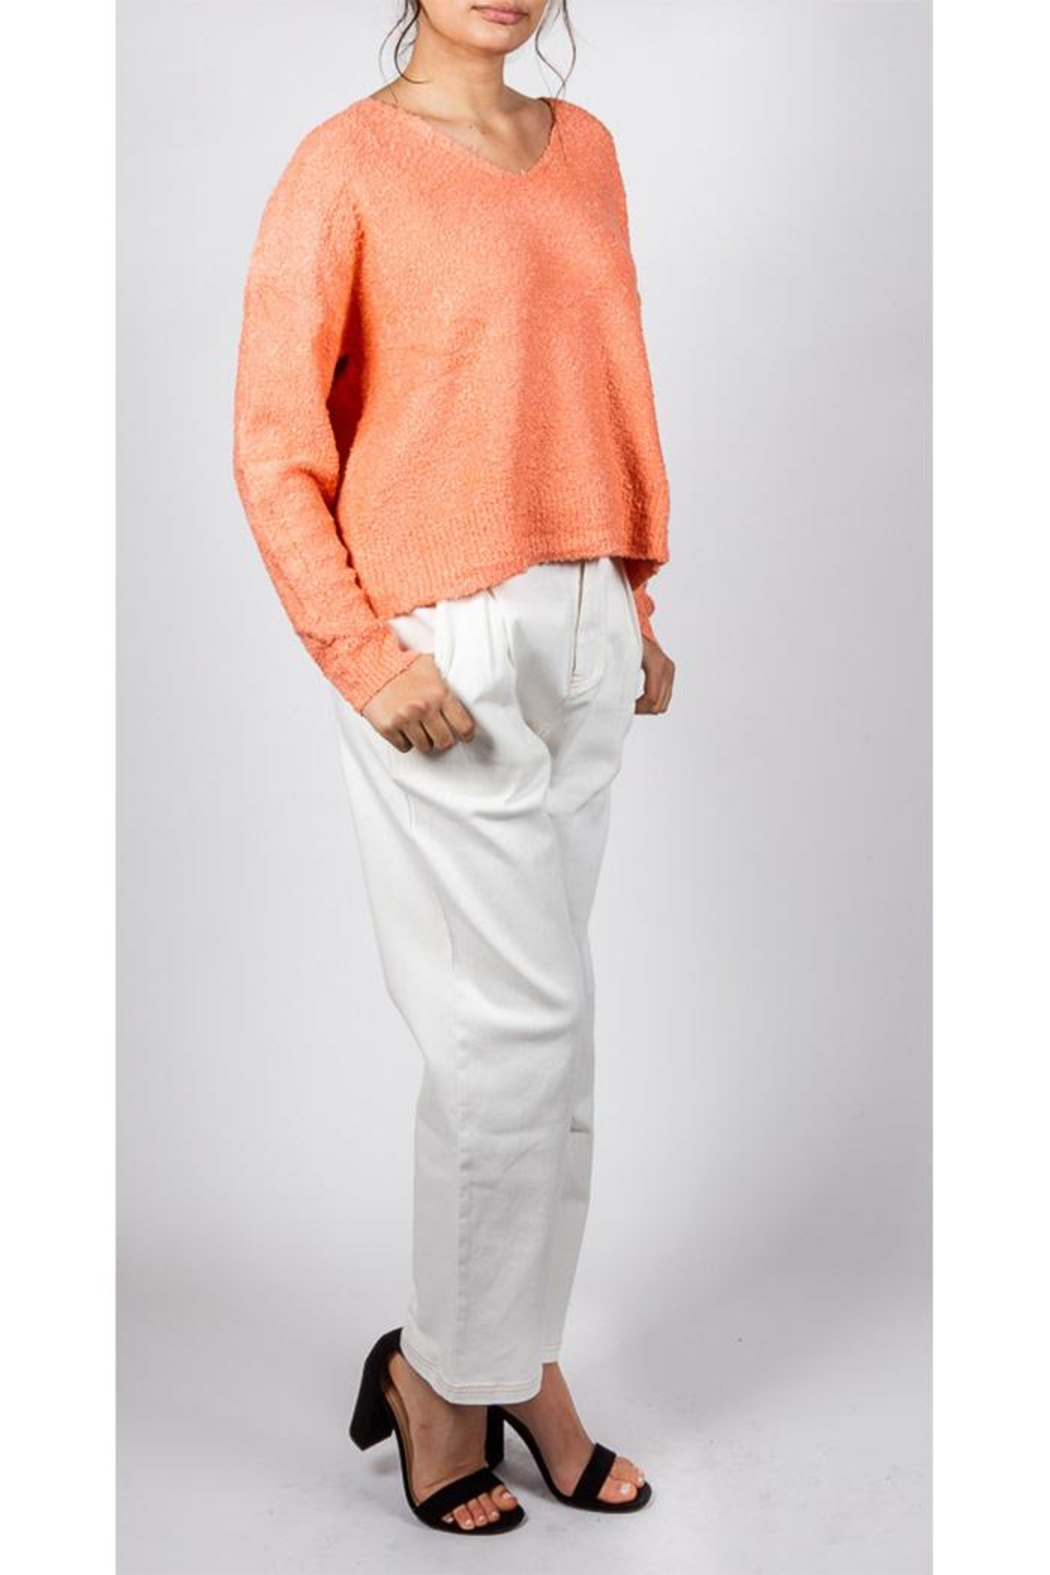 Le Lis White Canvas Trousers - Front Full Image